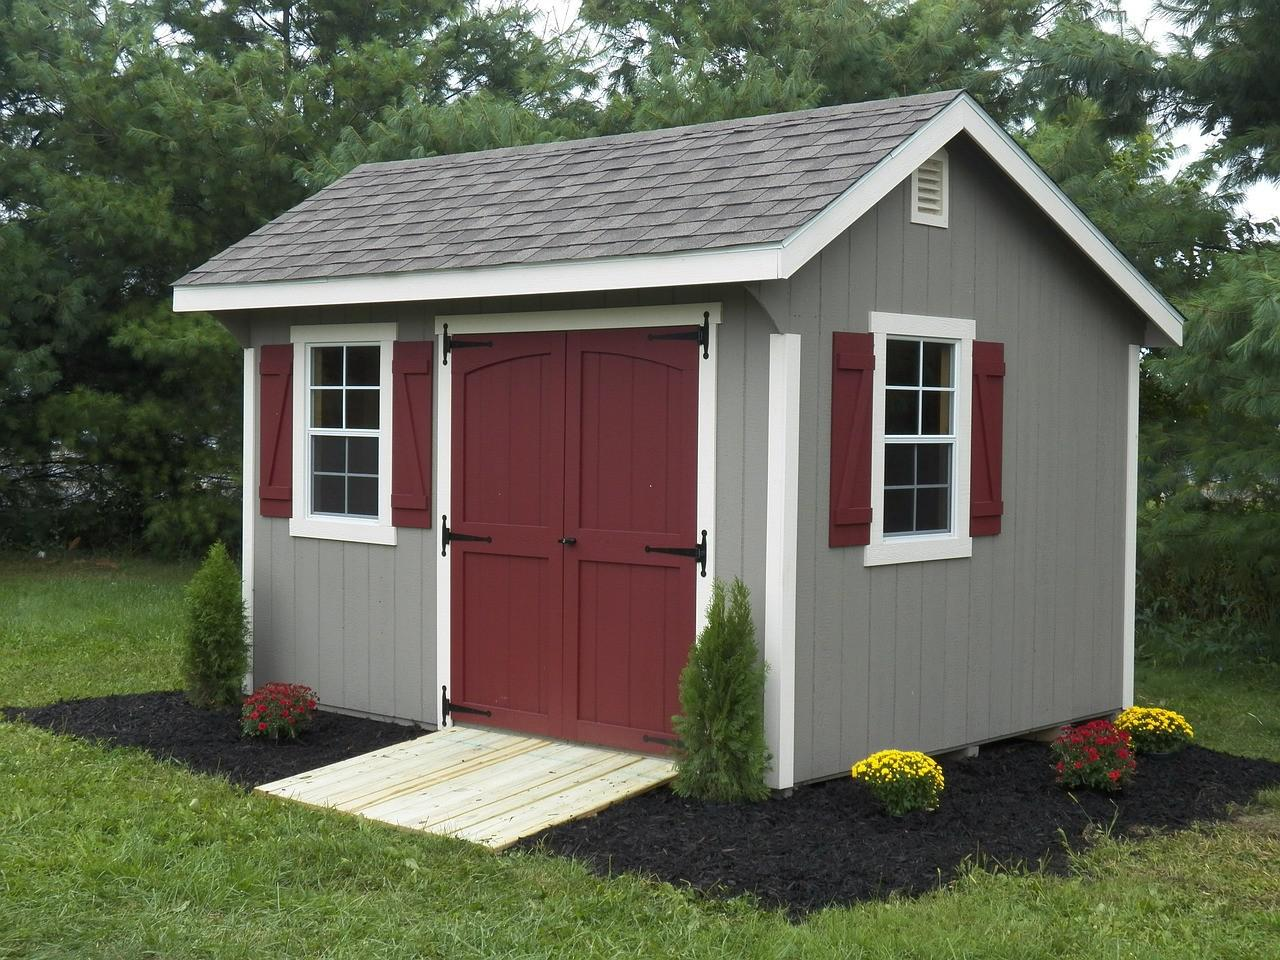 Image of: Cute Garden Shed Pictures